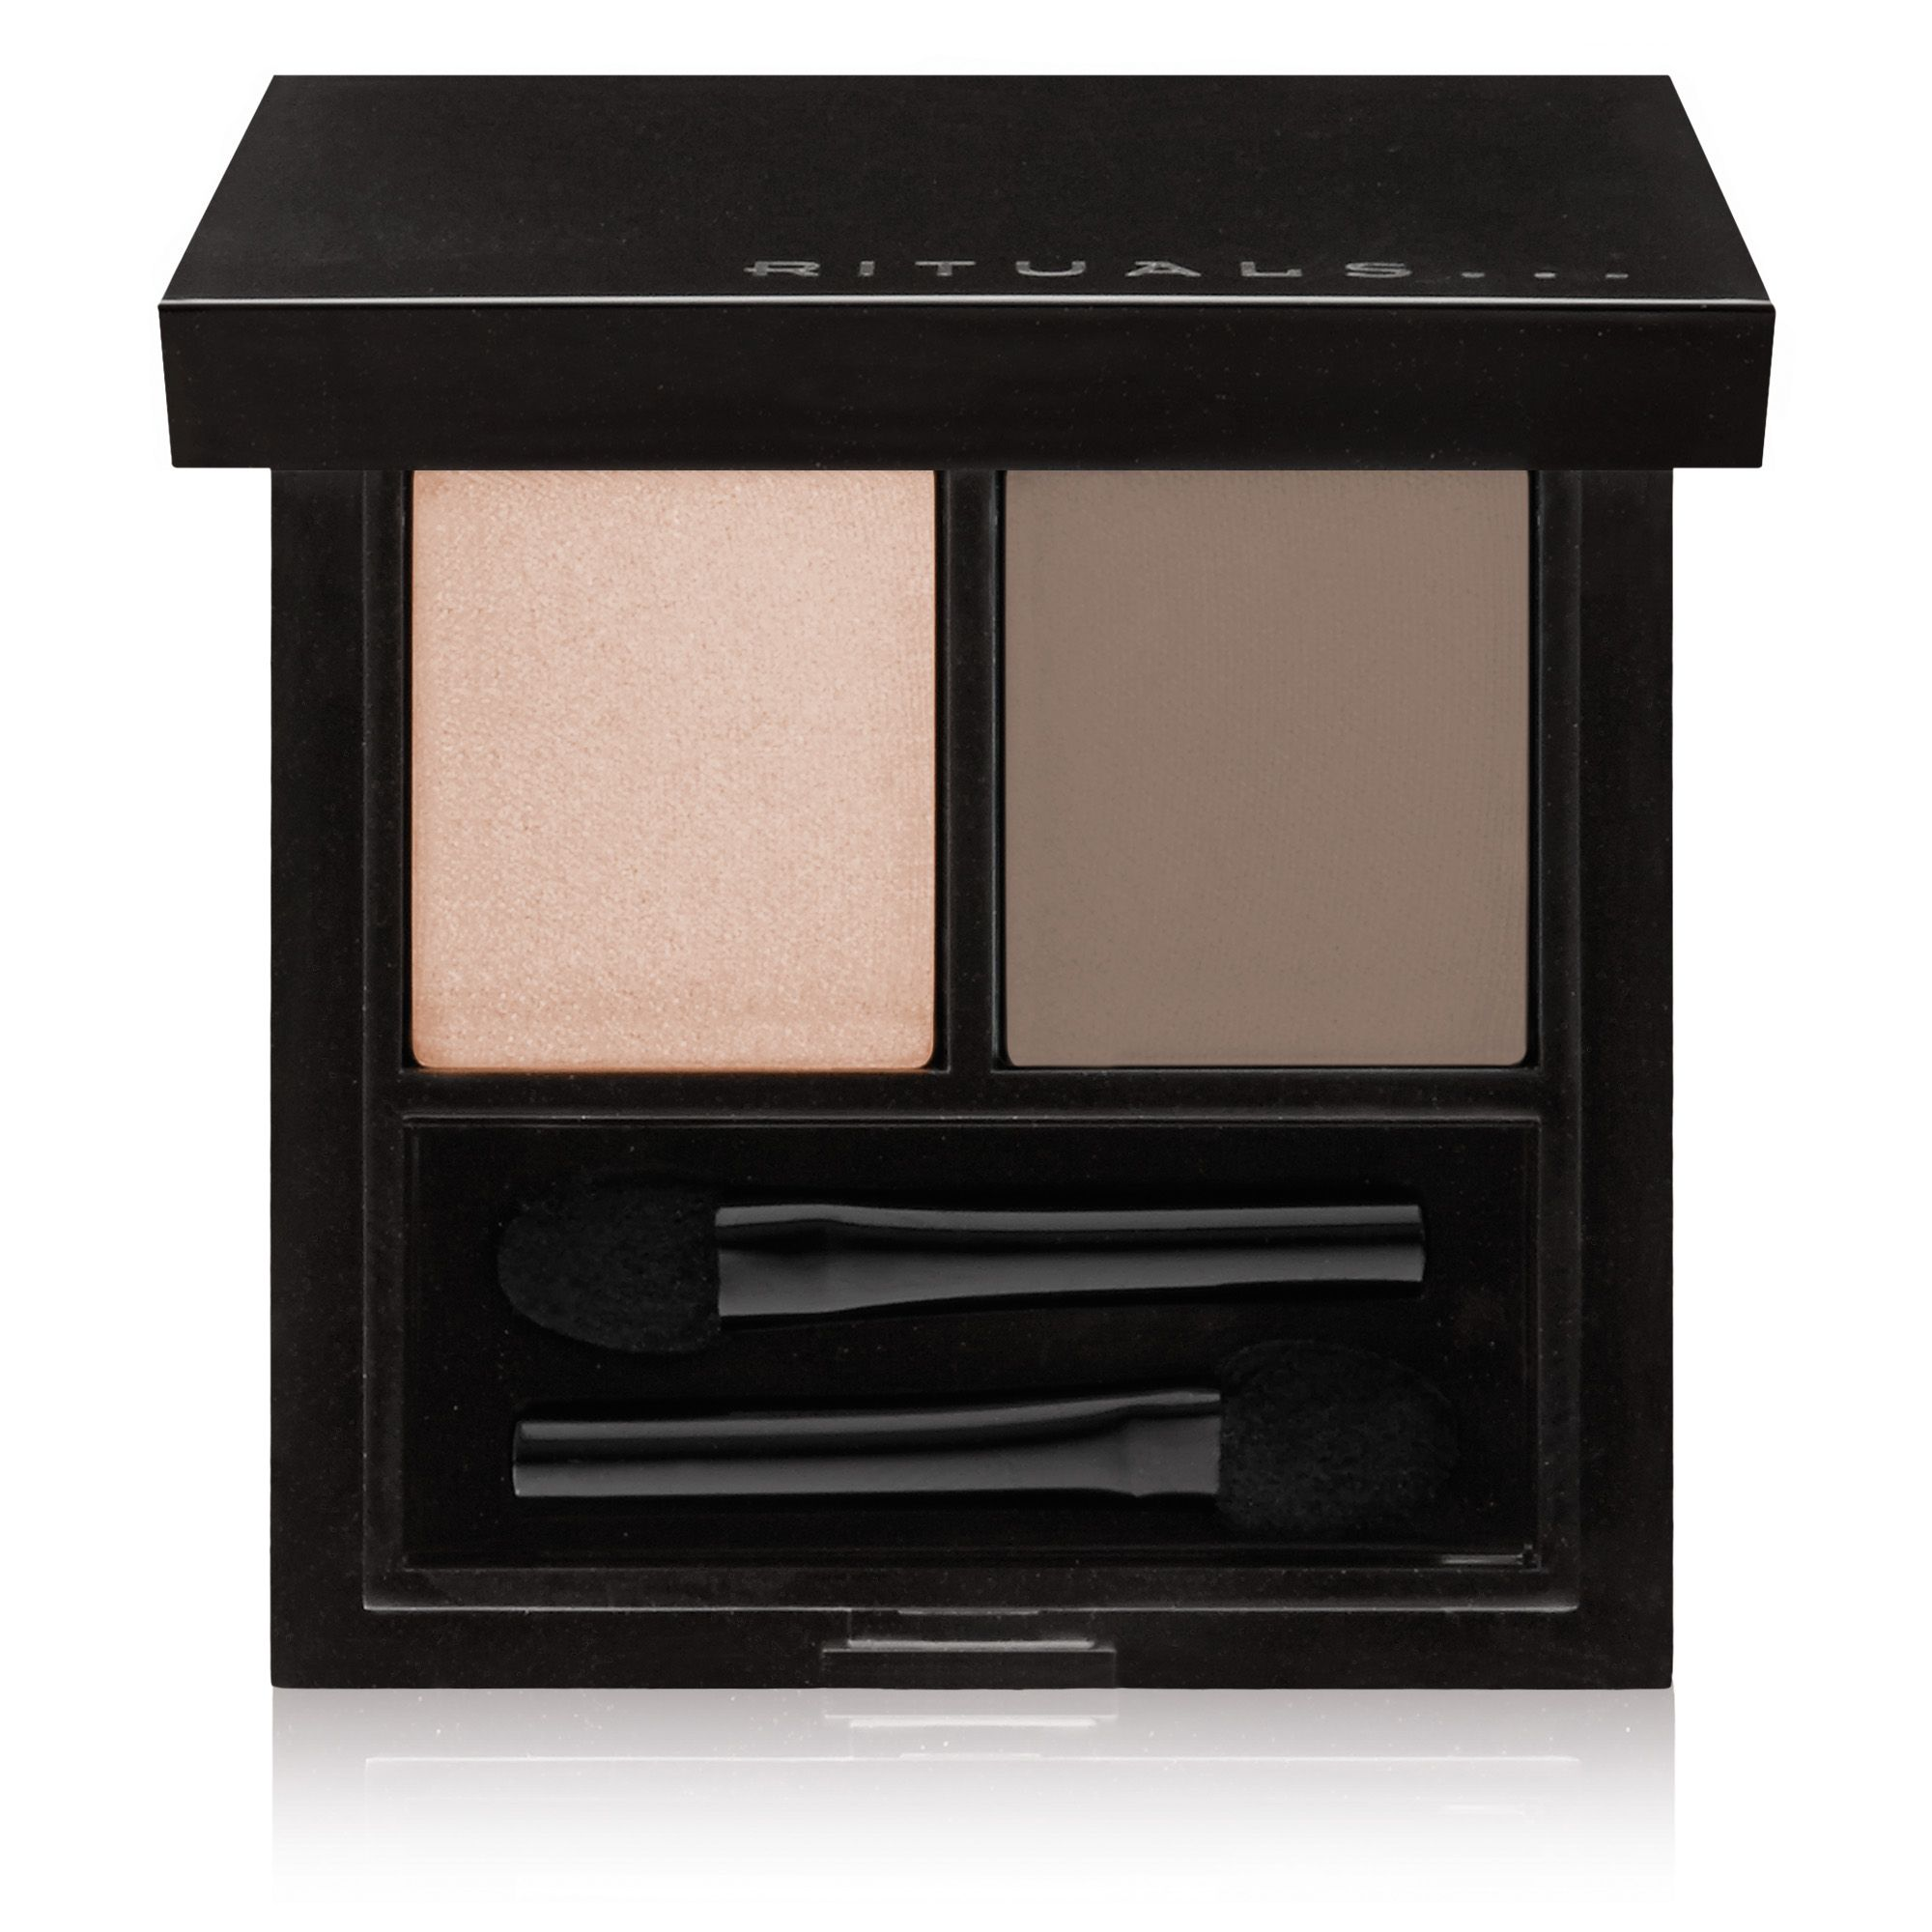 Duo eye shadow - Amber Harmony